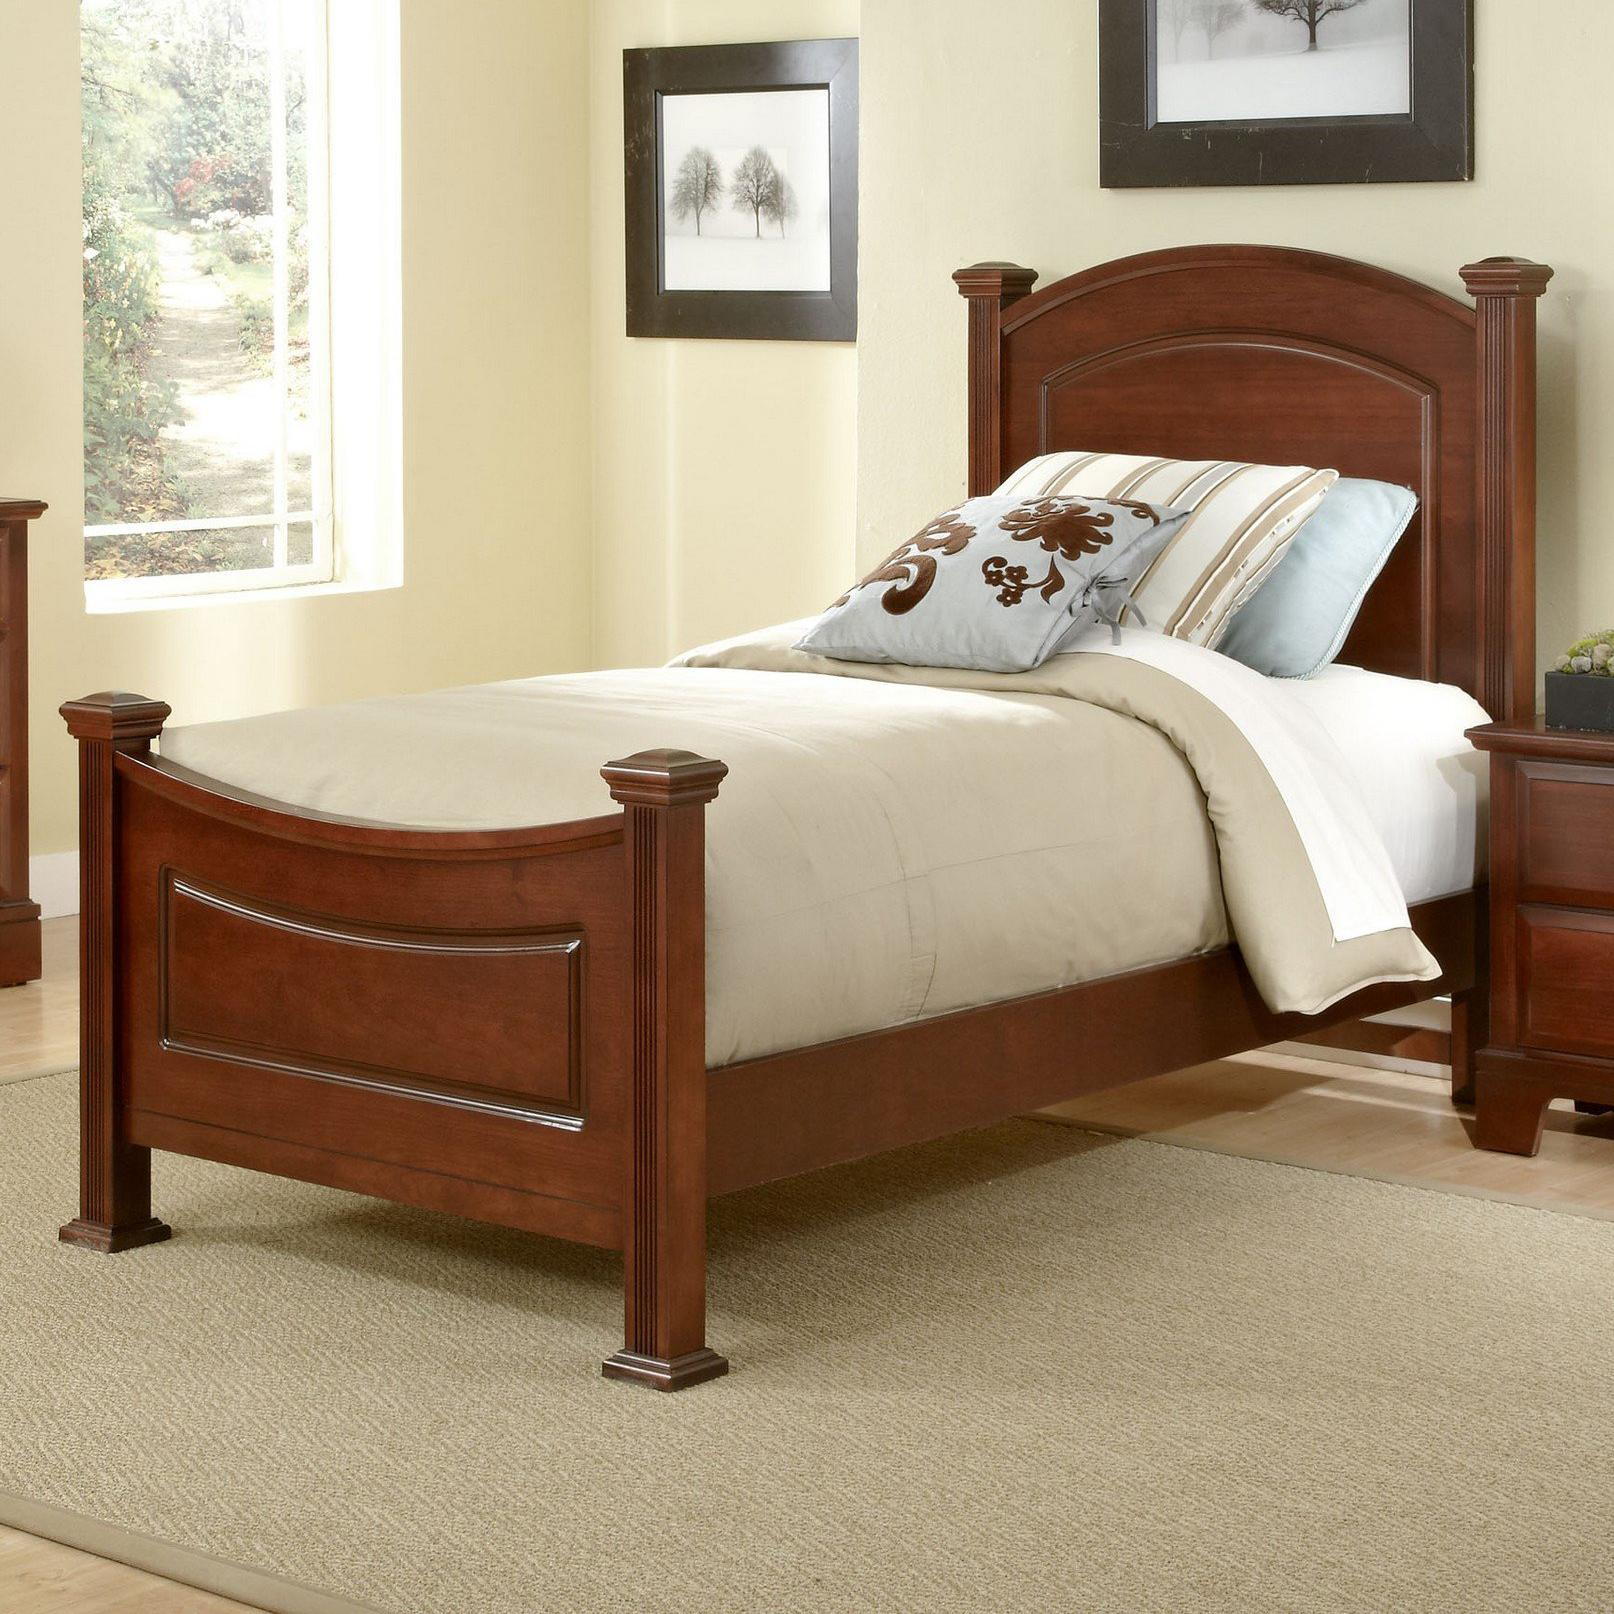 Hamilton/Franklin Twin Panel Bed by Vaughan Bassett at Northeast Factory Direct